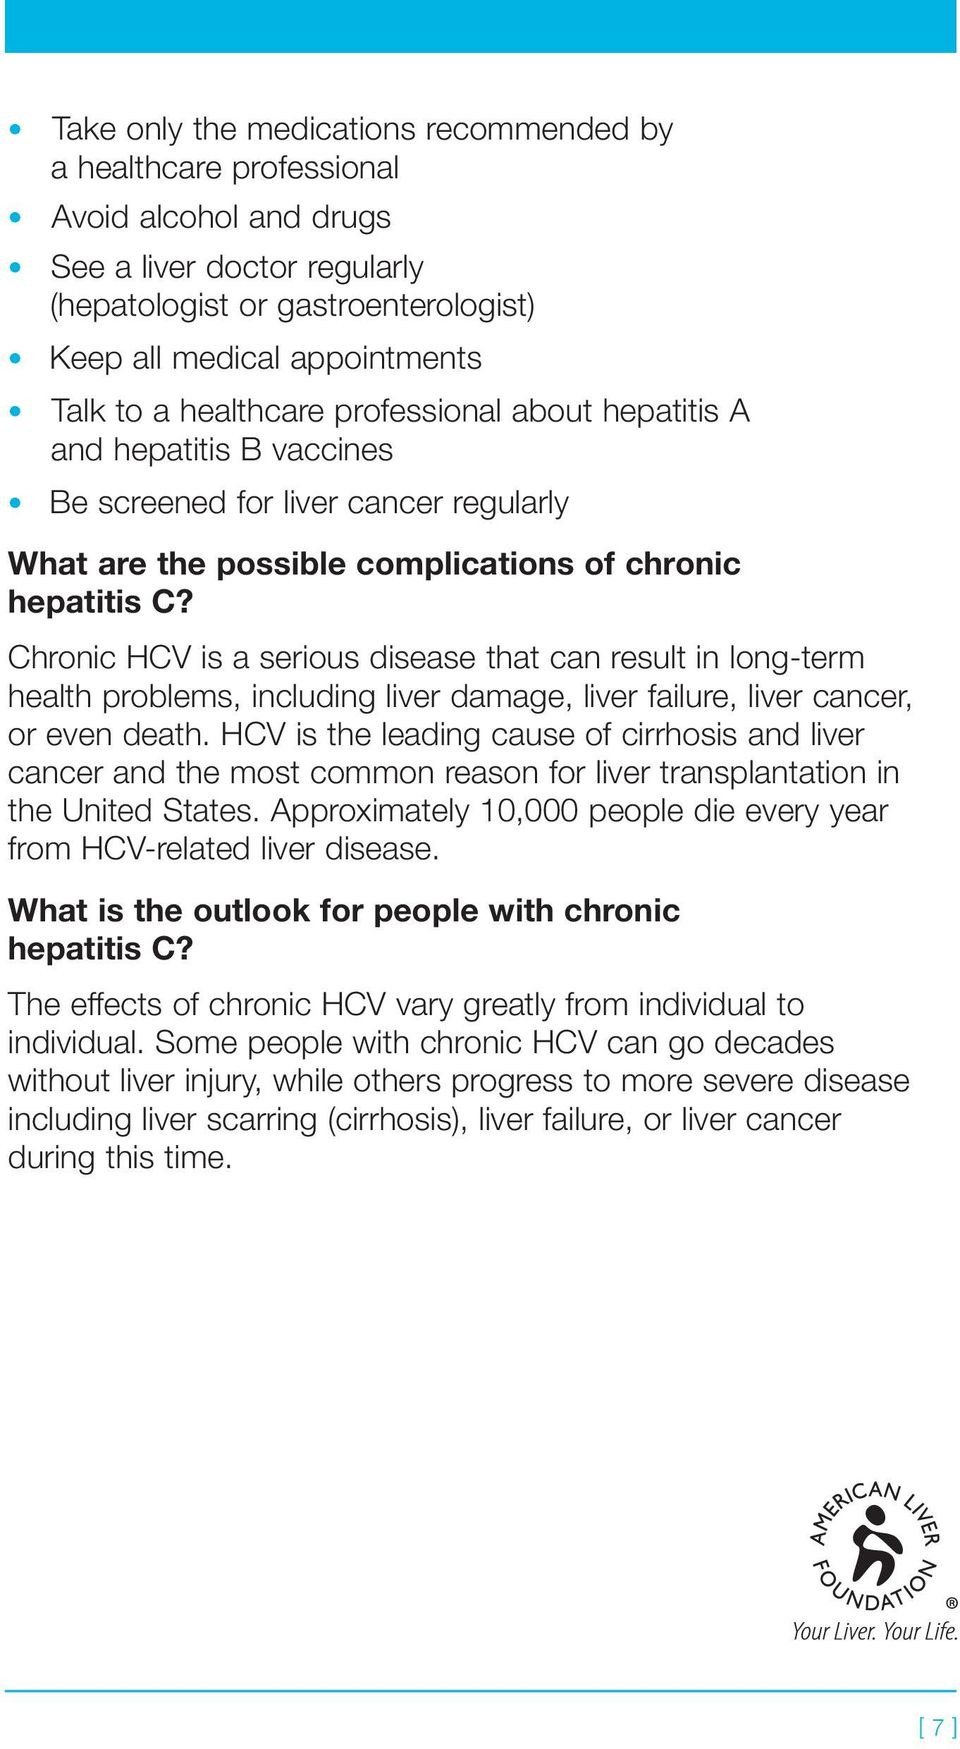 Chronic HCV is a serious disease that can result in long-term health problems, including liver damage, liver failure, liver cancer, or even death.